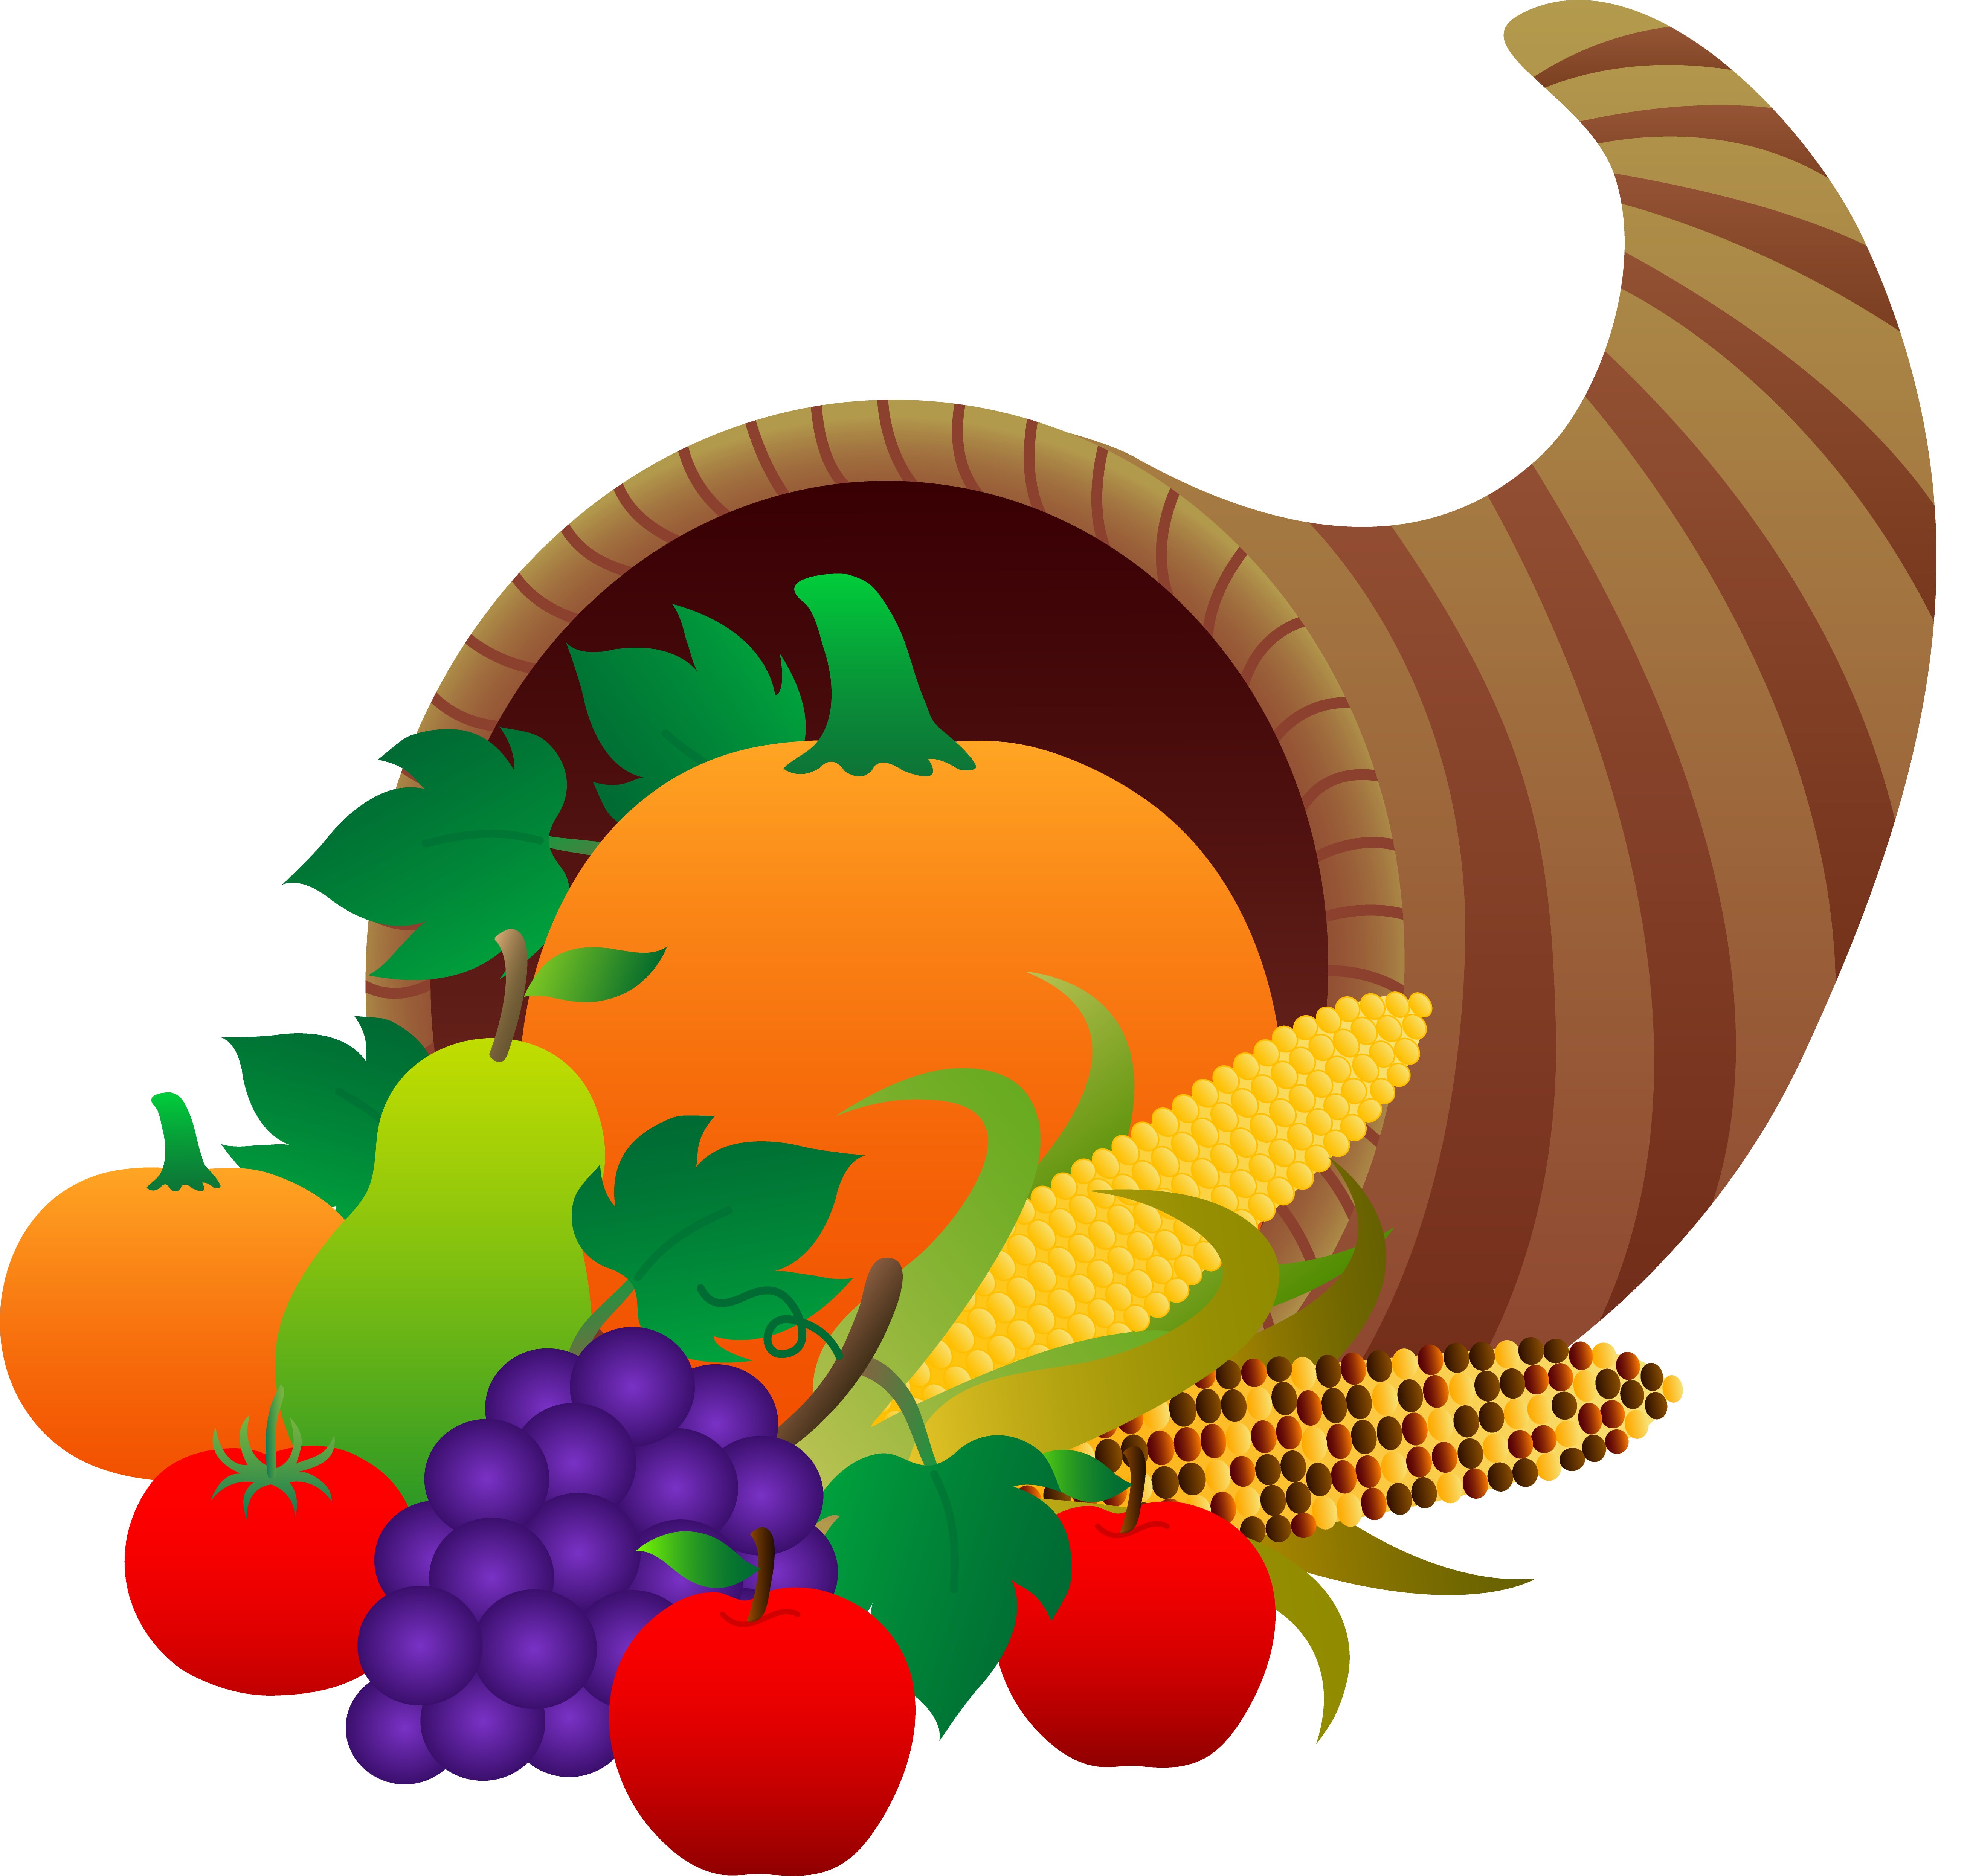 thanksgiving images clipart simple